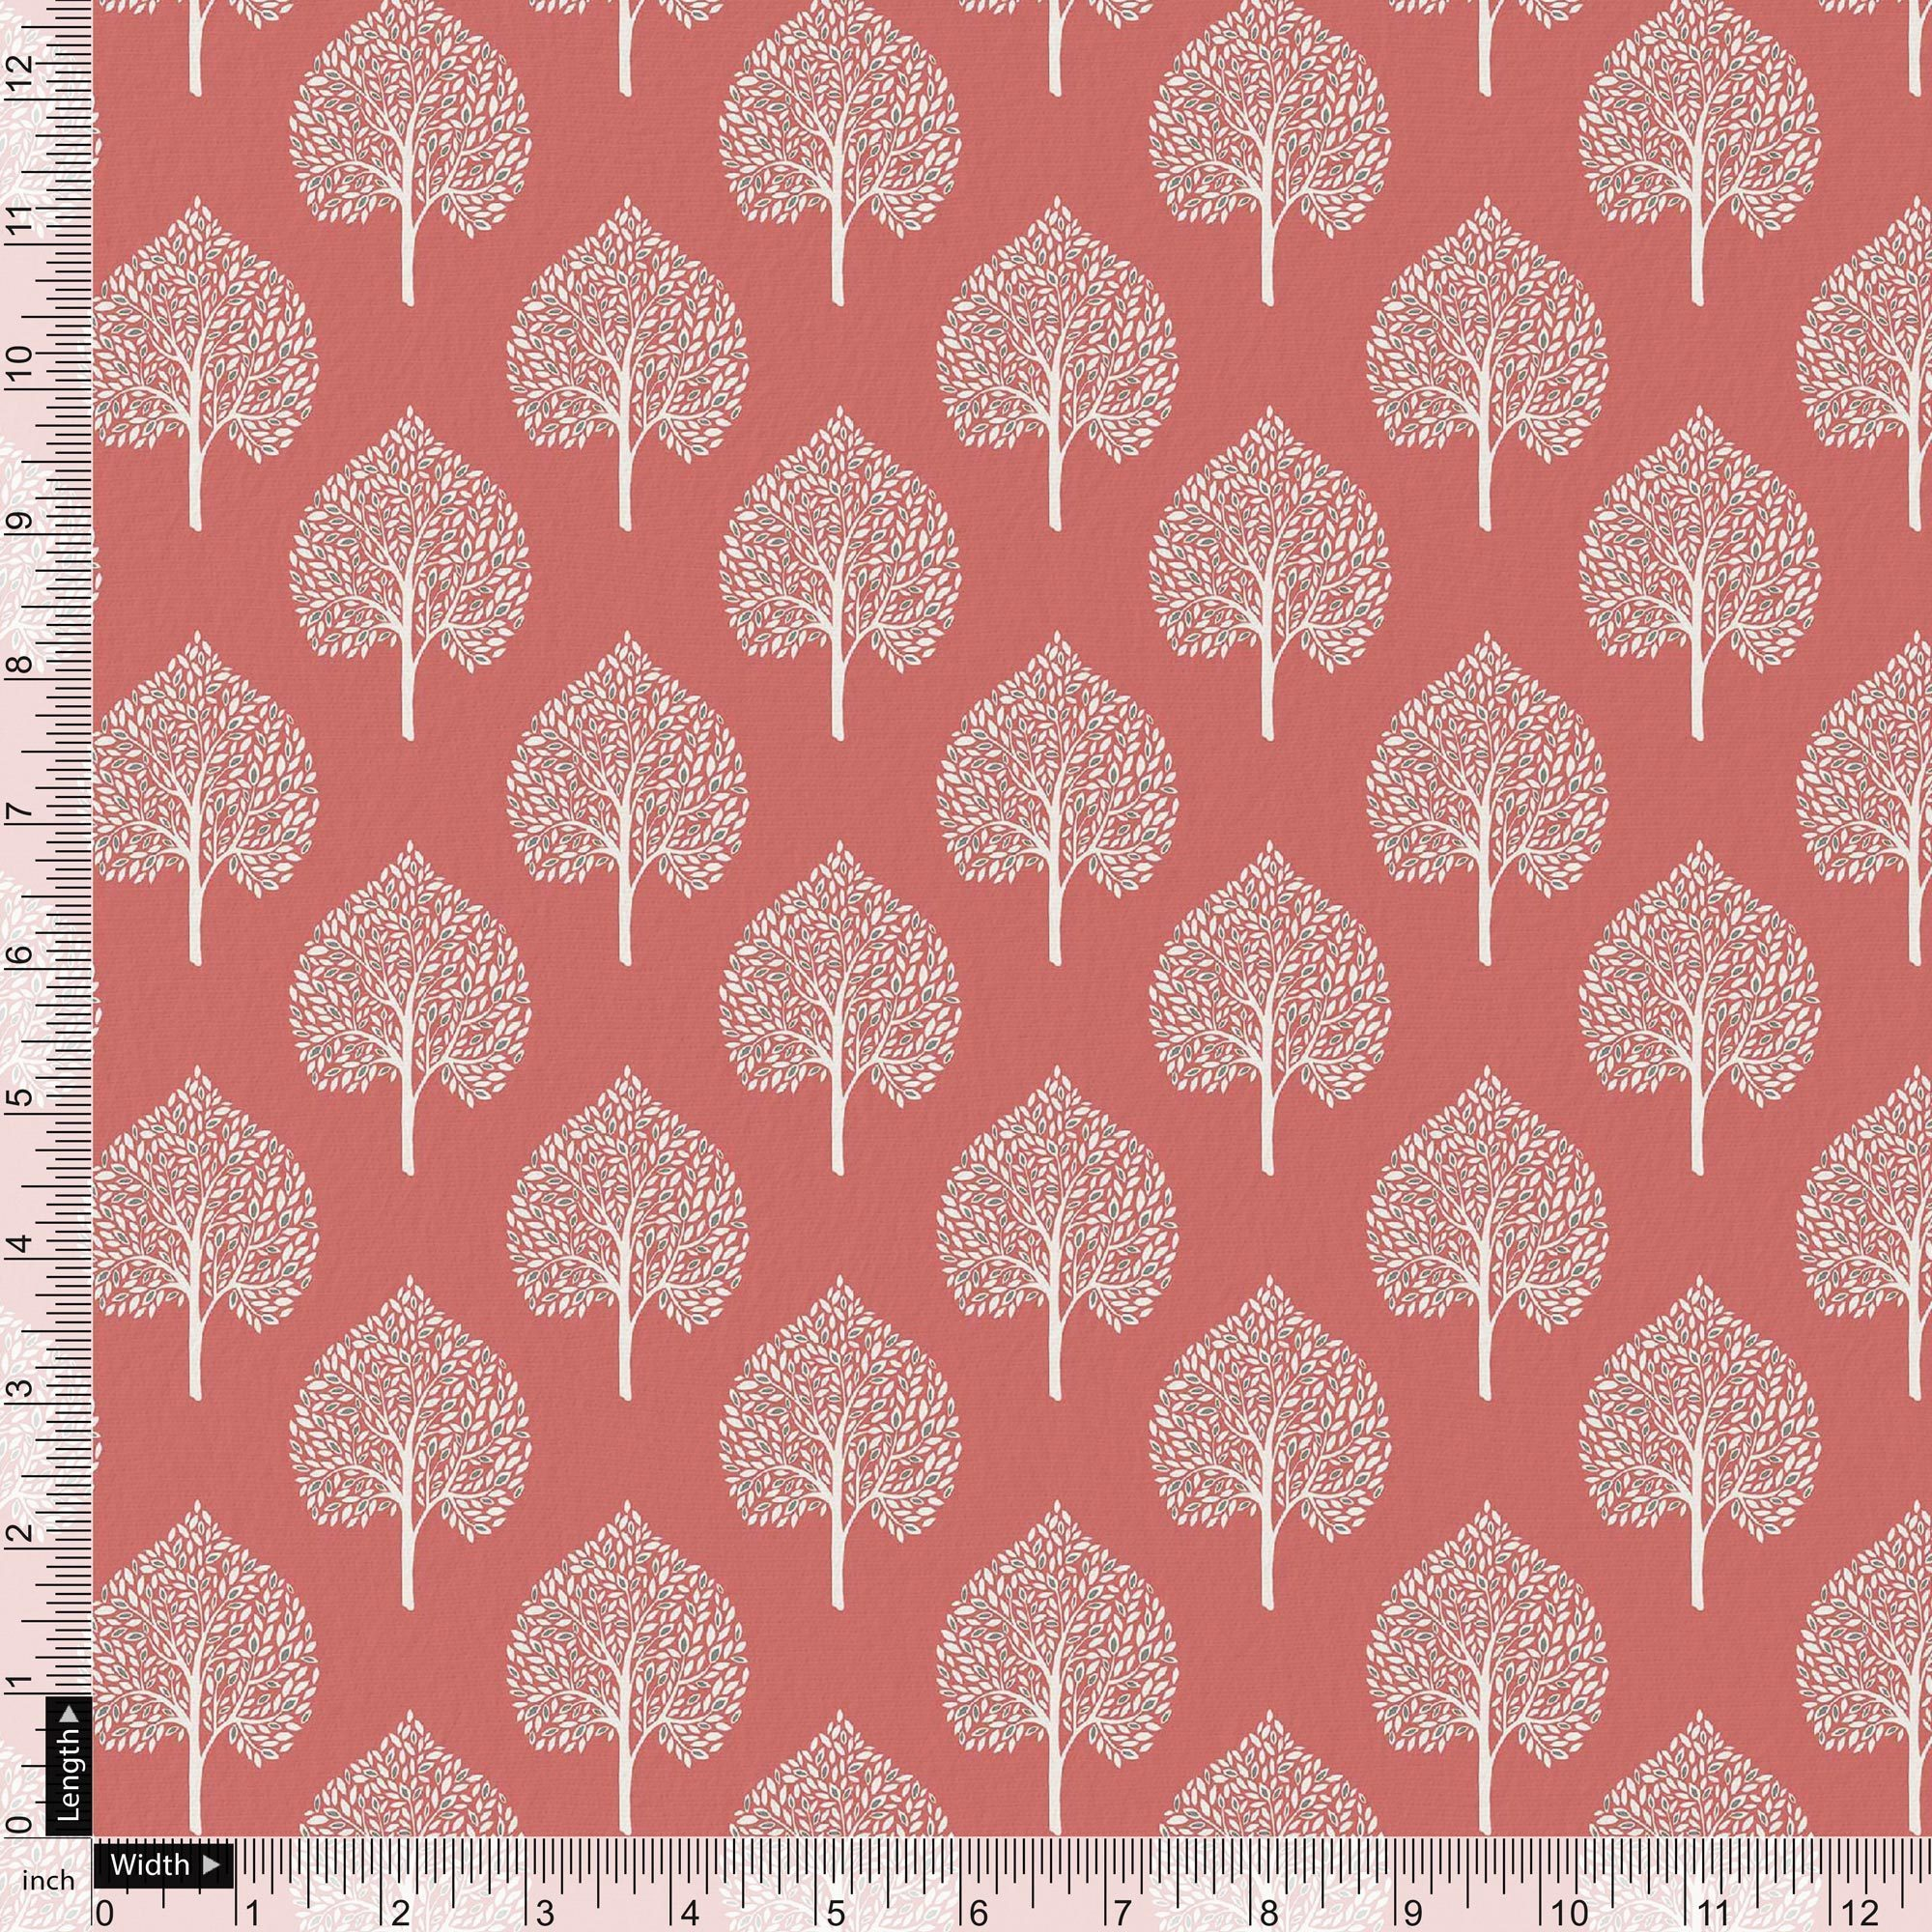 Seamless Leaves Design Printed Fabric - FAB VOGUE Studio. Shop Fabric @ www.fabvoguestudio.com